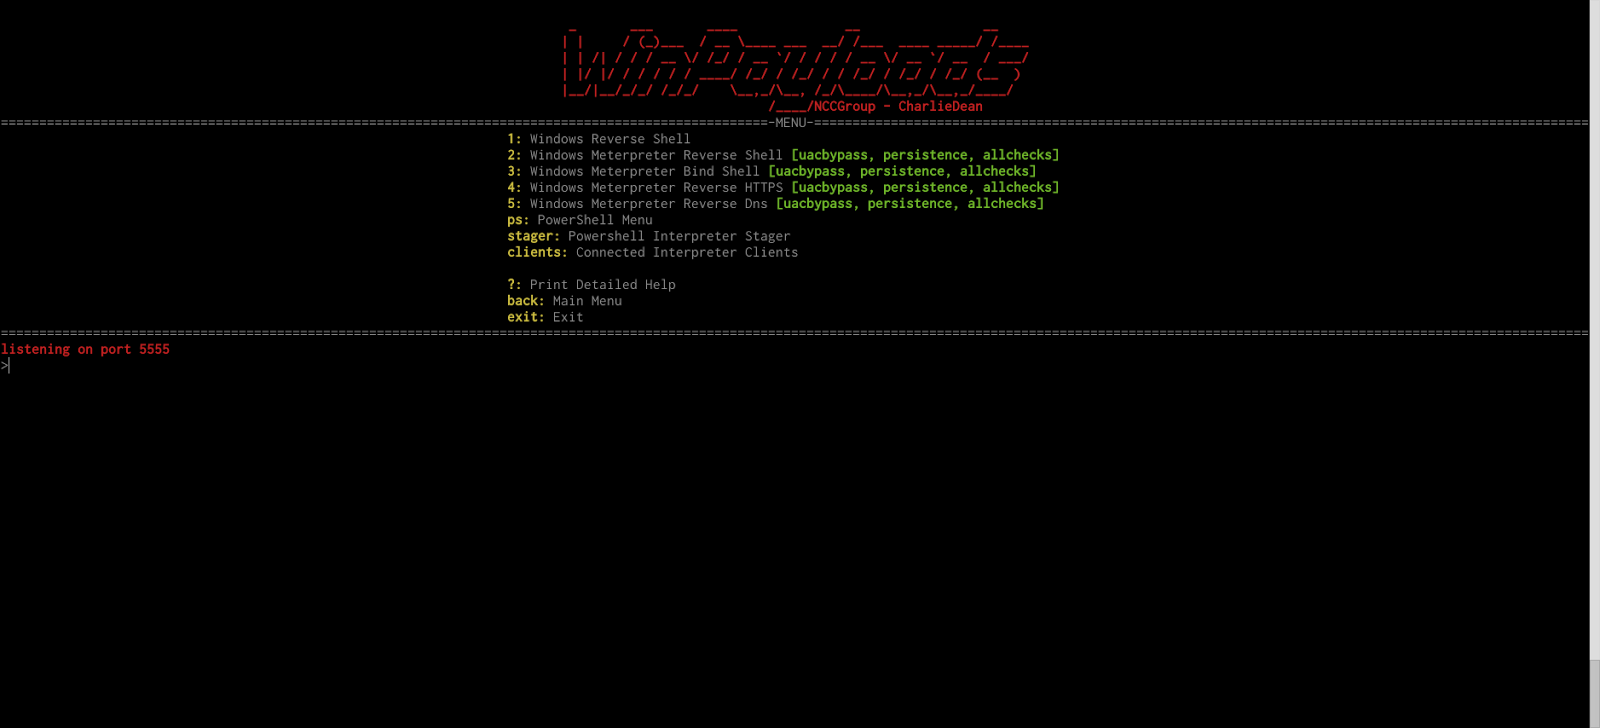 Winpayloads - How To Hack Windows PC using a Link on Kali